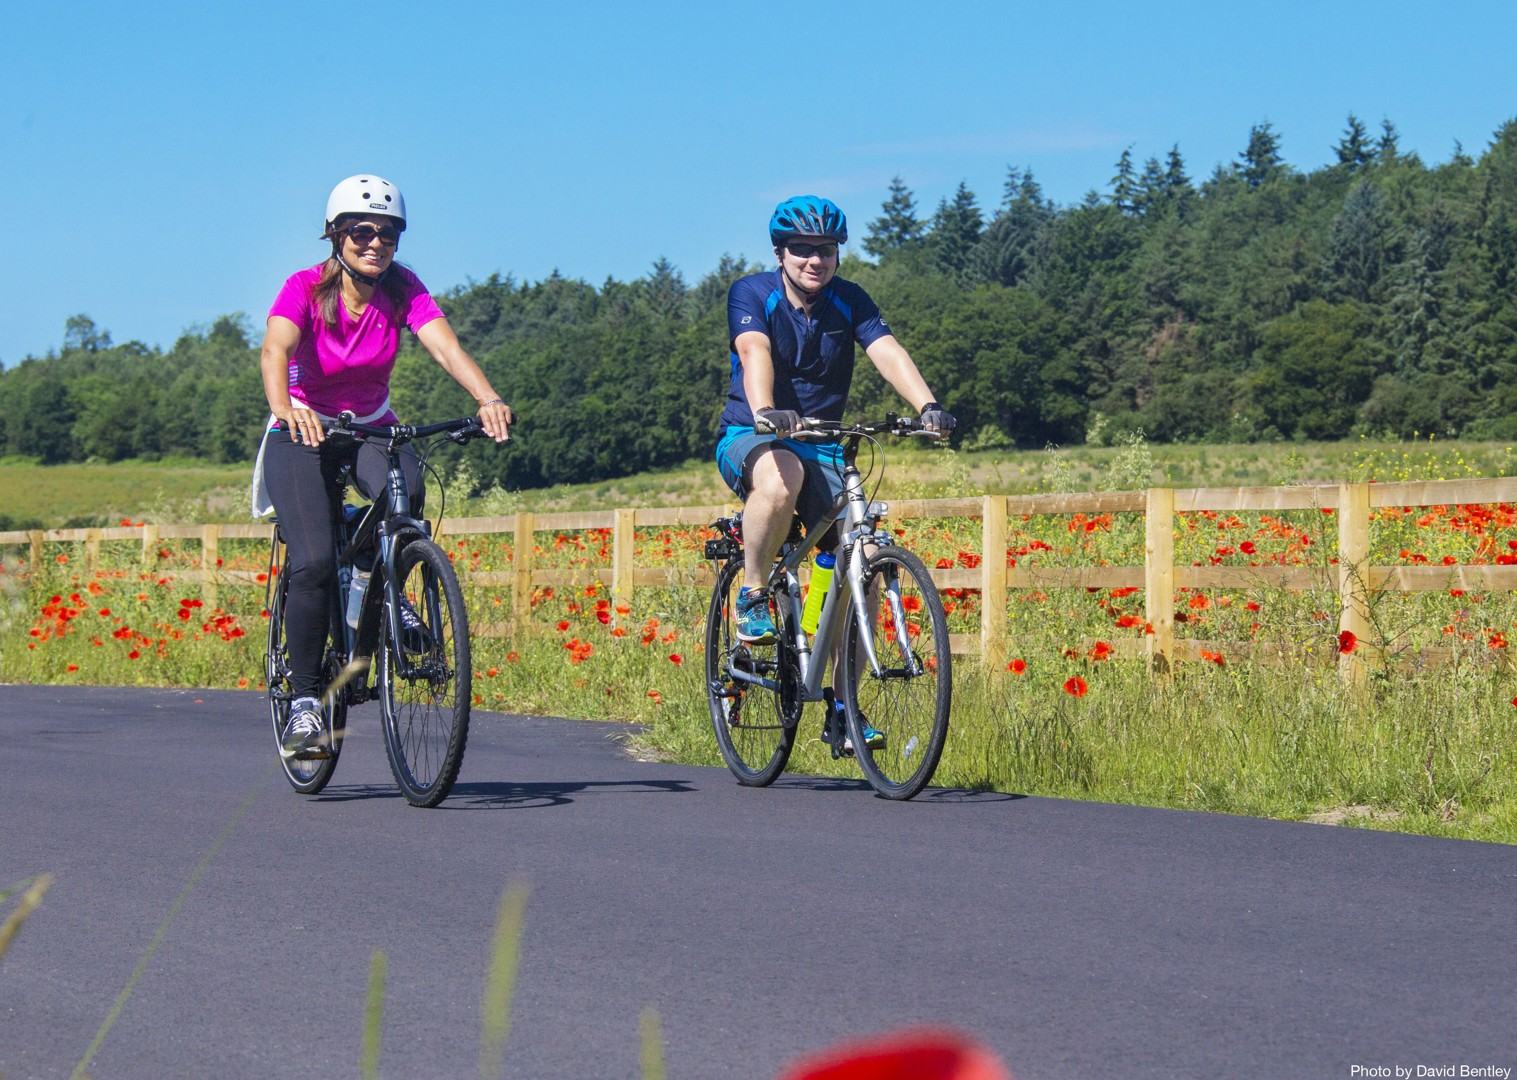 National-Cycle-Network-Hadrians-Cycleway-Self-Guided-Leisure-Cycling-Holiday.jpg - UK - Hadrian's Cycleway - 3 Days Cycling - Self-Guided Leisure Cycling Holiday - Leisure Cycling